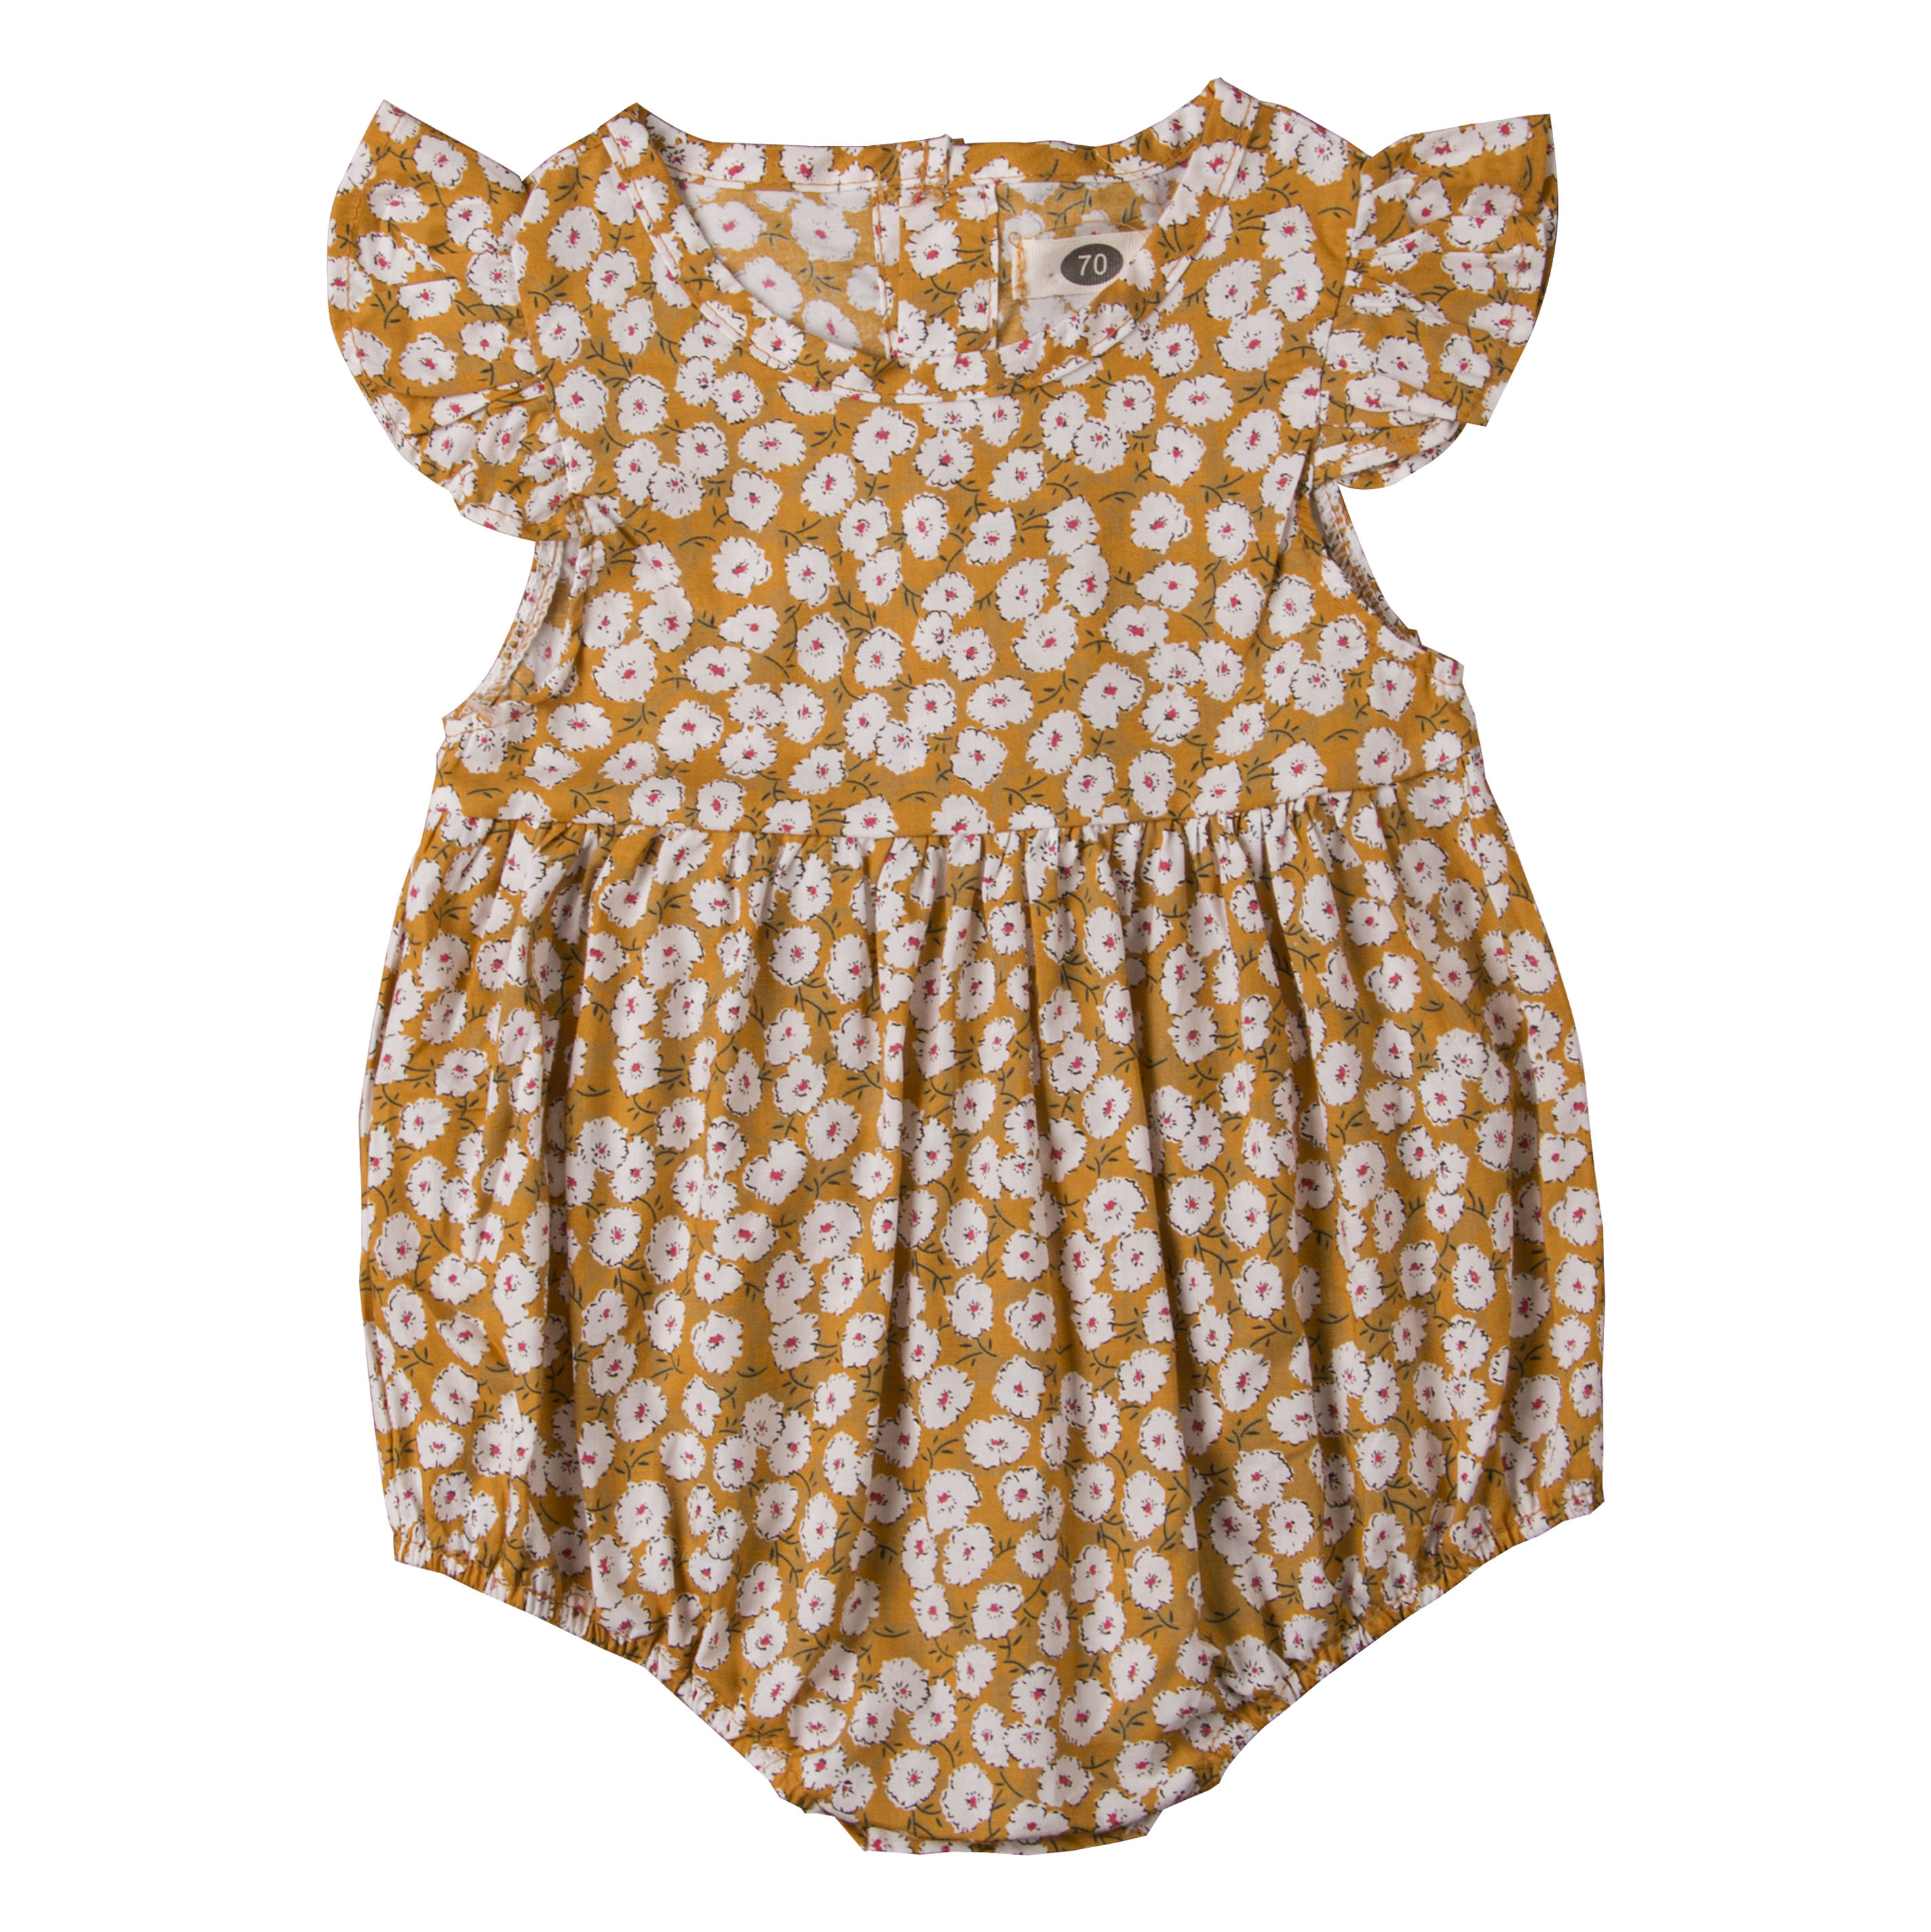 ecdeb4f8e5b Newborn Baby Girls Butterfly Sleeve Lovely Floral Tutu Jumpsuit Bodysuit  Summer Outfits Clothes